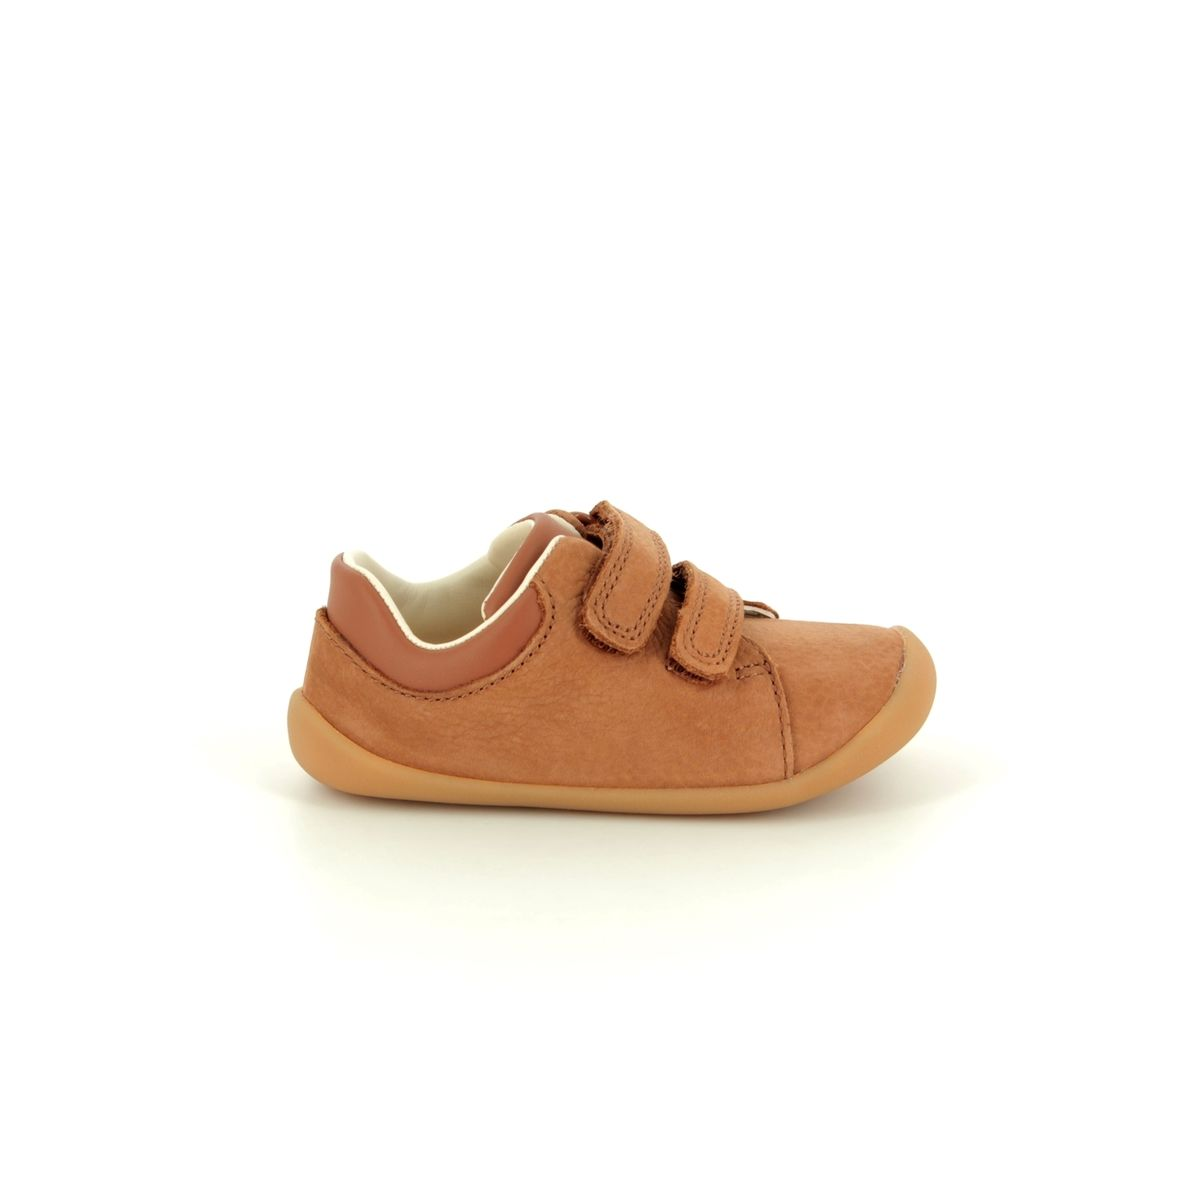 bae242acdc8b0 Clarks First Shoes - Tan Leather - 422906F ROAMER CRAFT T